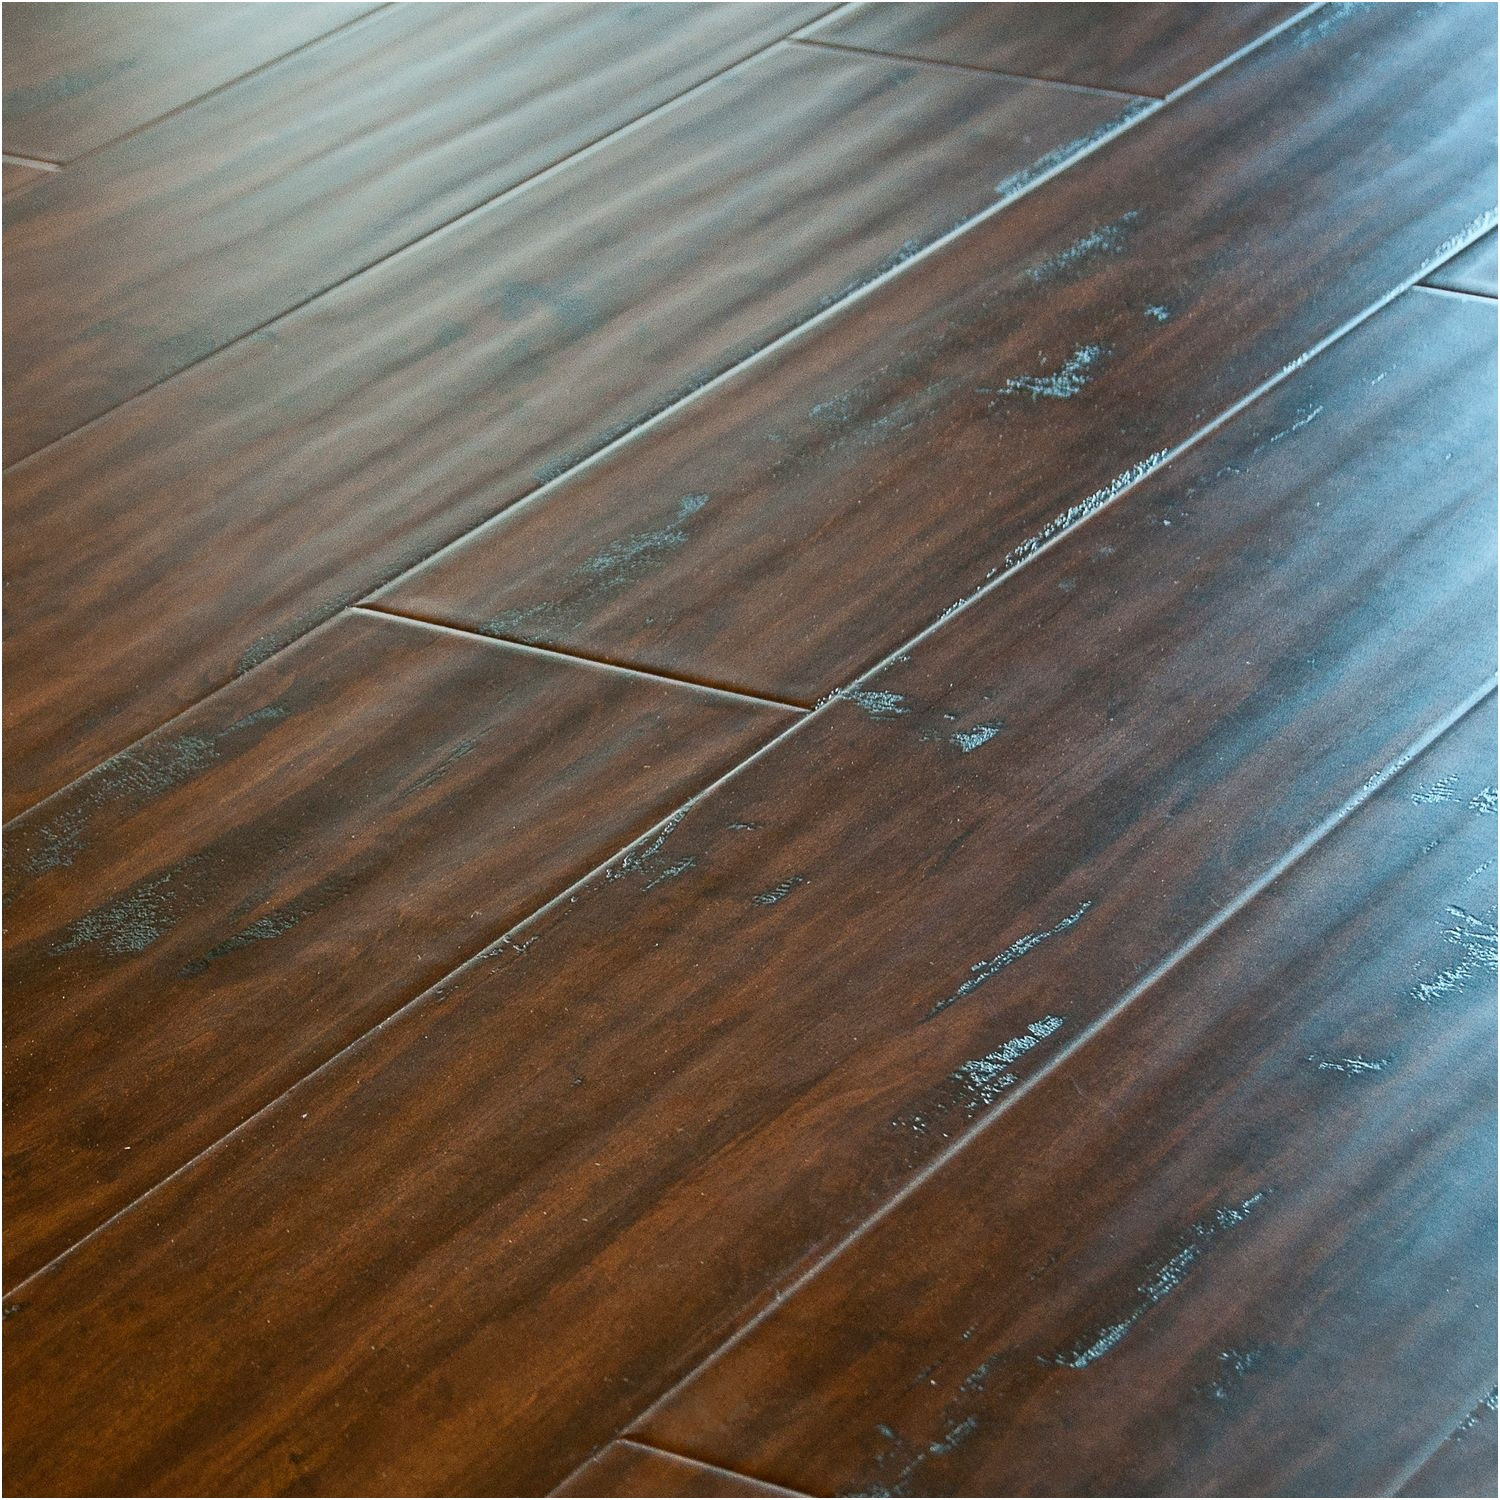 costco hardwood flooring installation cost of costco laminate wood flooring review best of select surfaces for costco laminate wood flooring review best of select surfaces laminate flooring reviews acai sofa